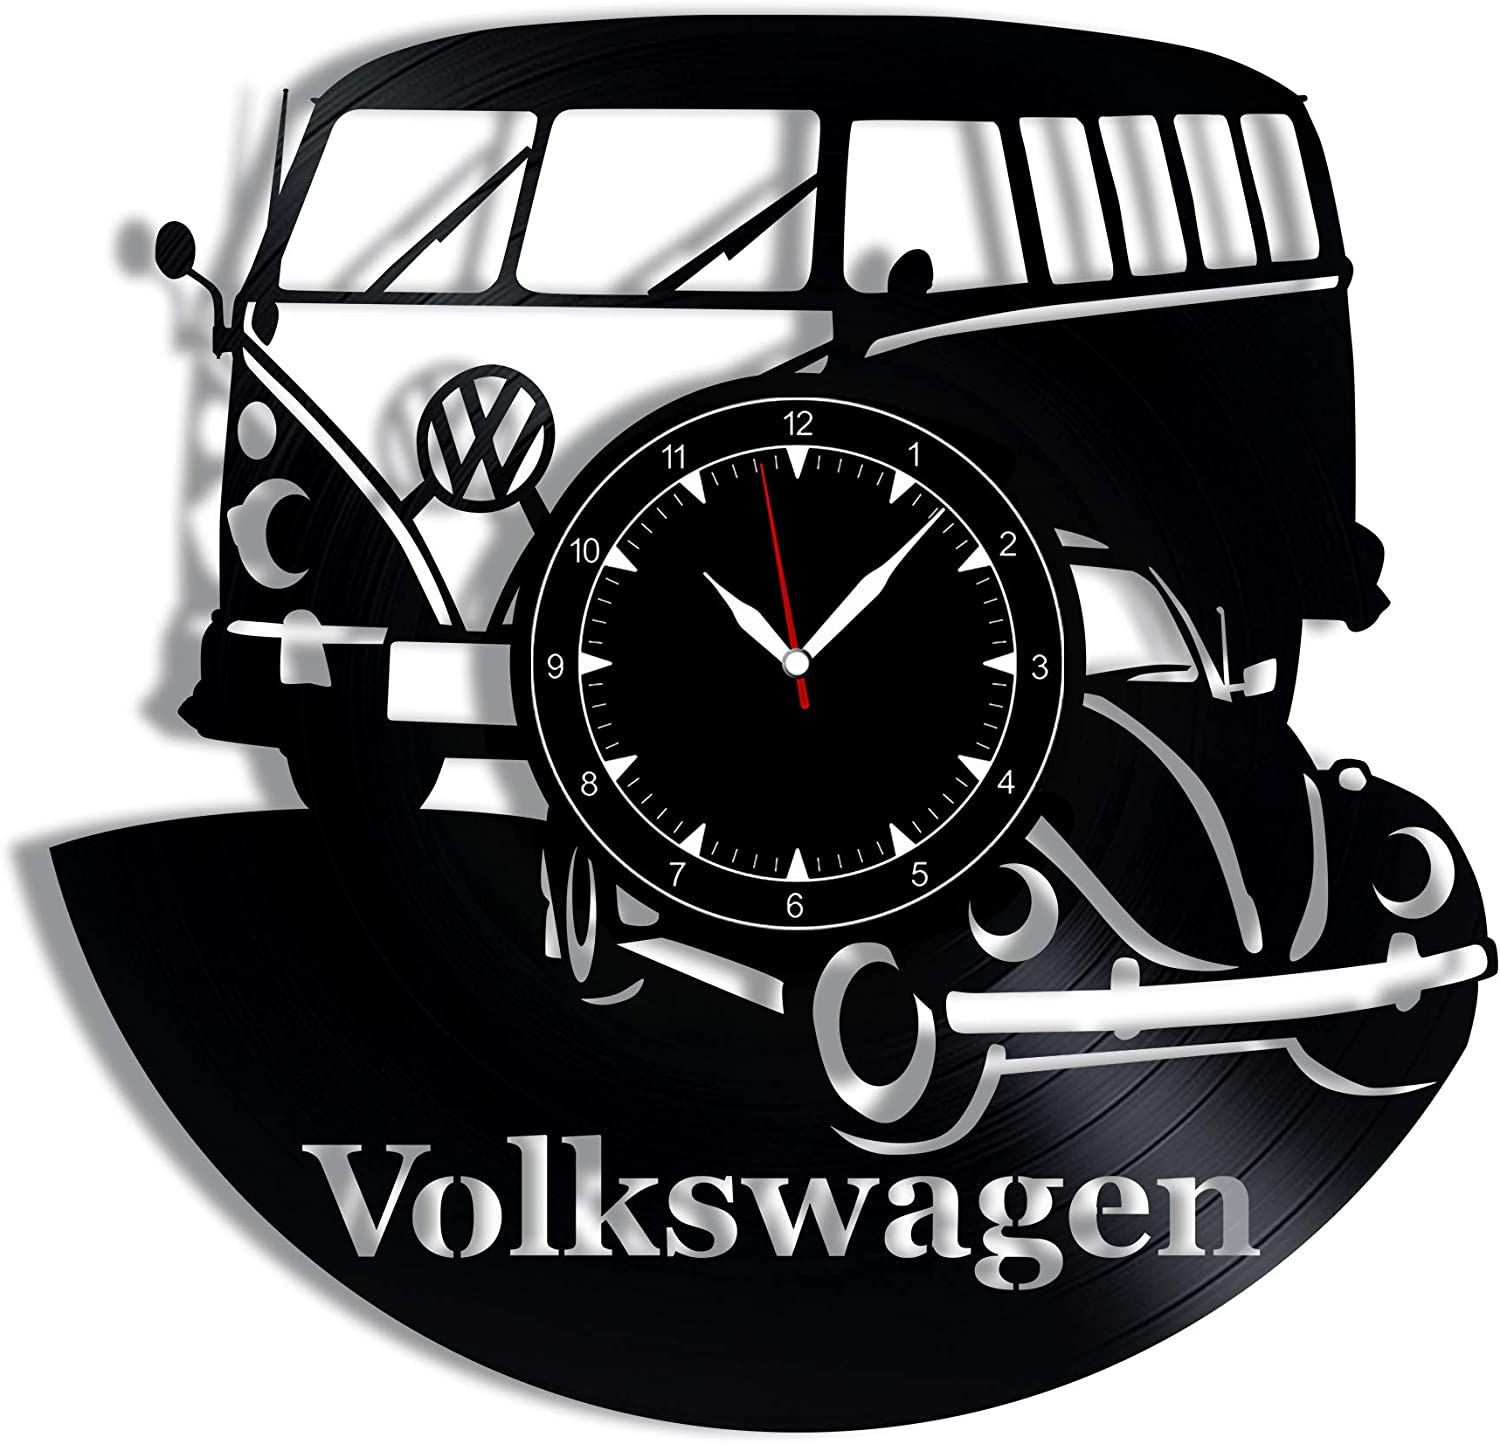 """Volkswagen Vinyl Record Clock 12"""" - Wall Clock Retro Car - Best Gift for Cars Lovers - Original Wall Home Decoration"""